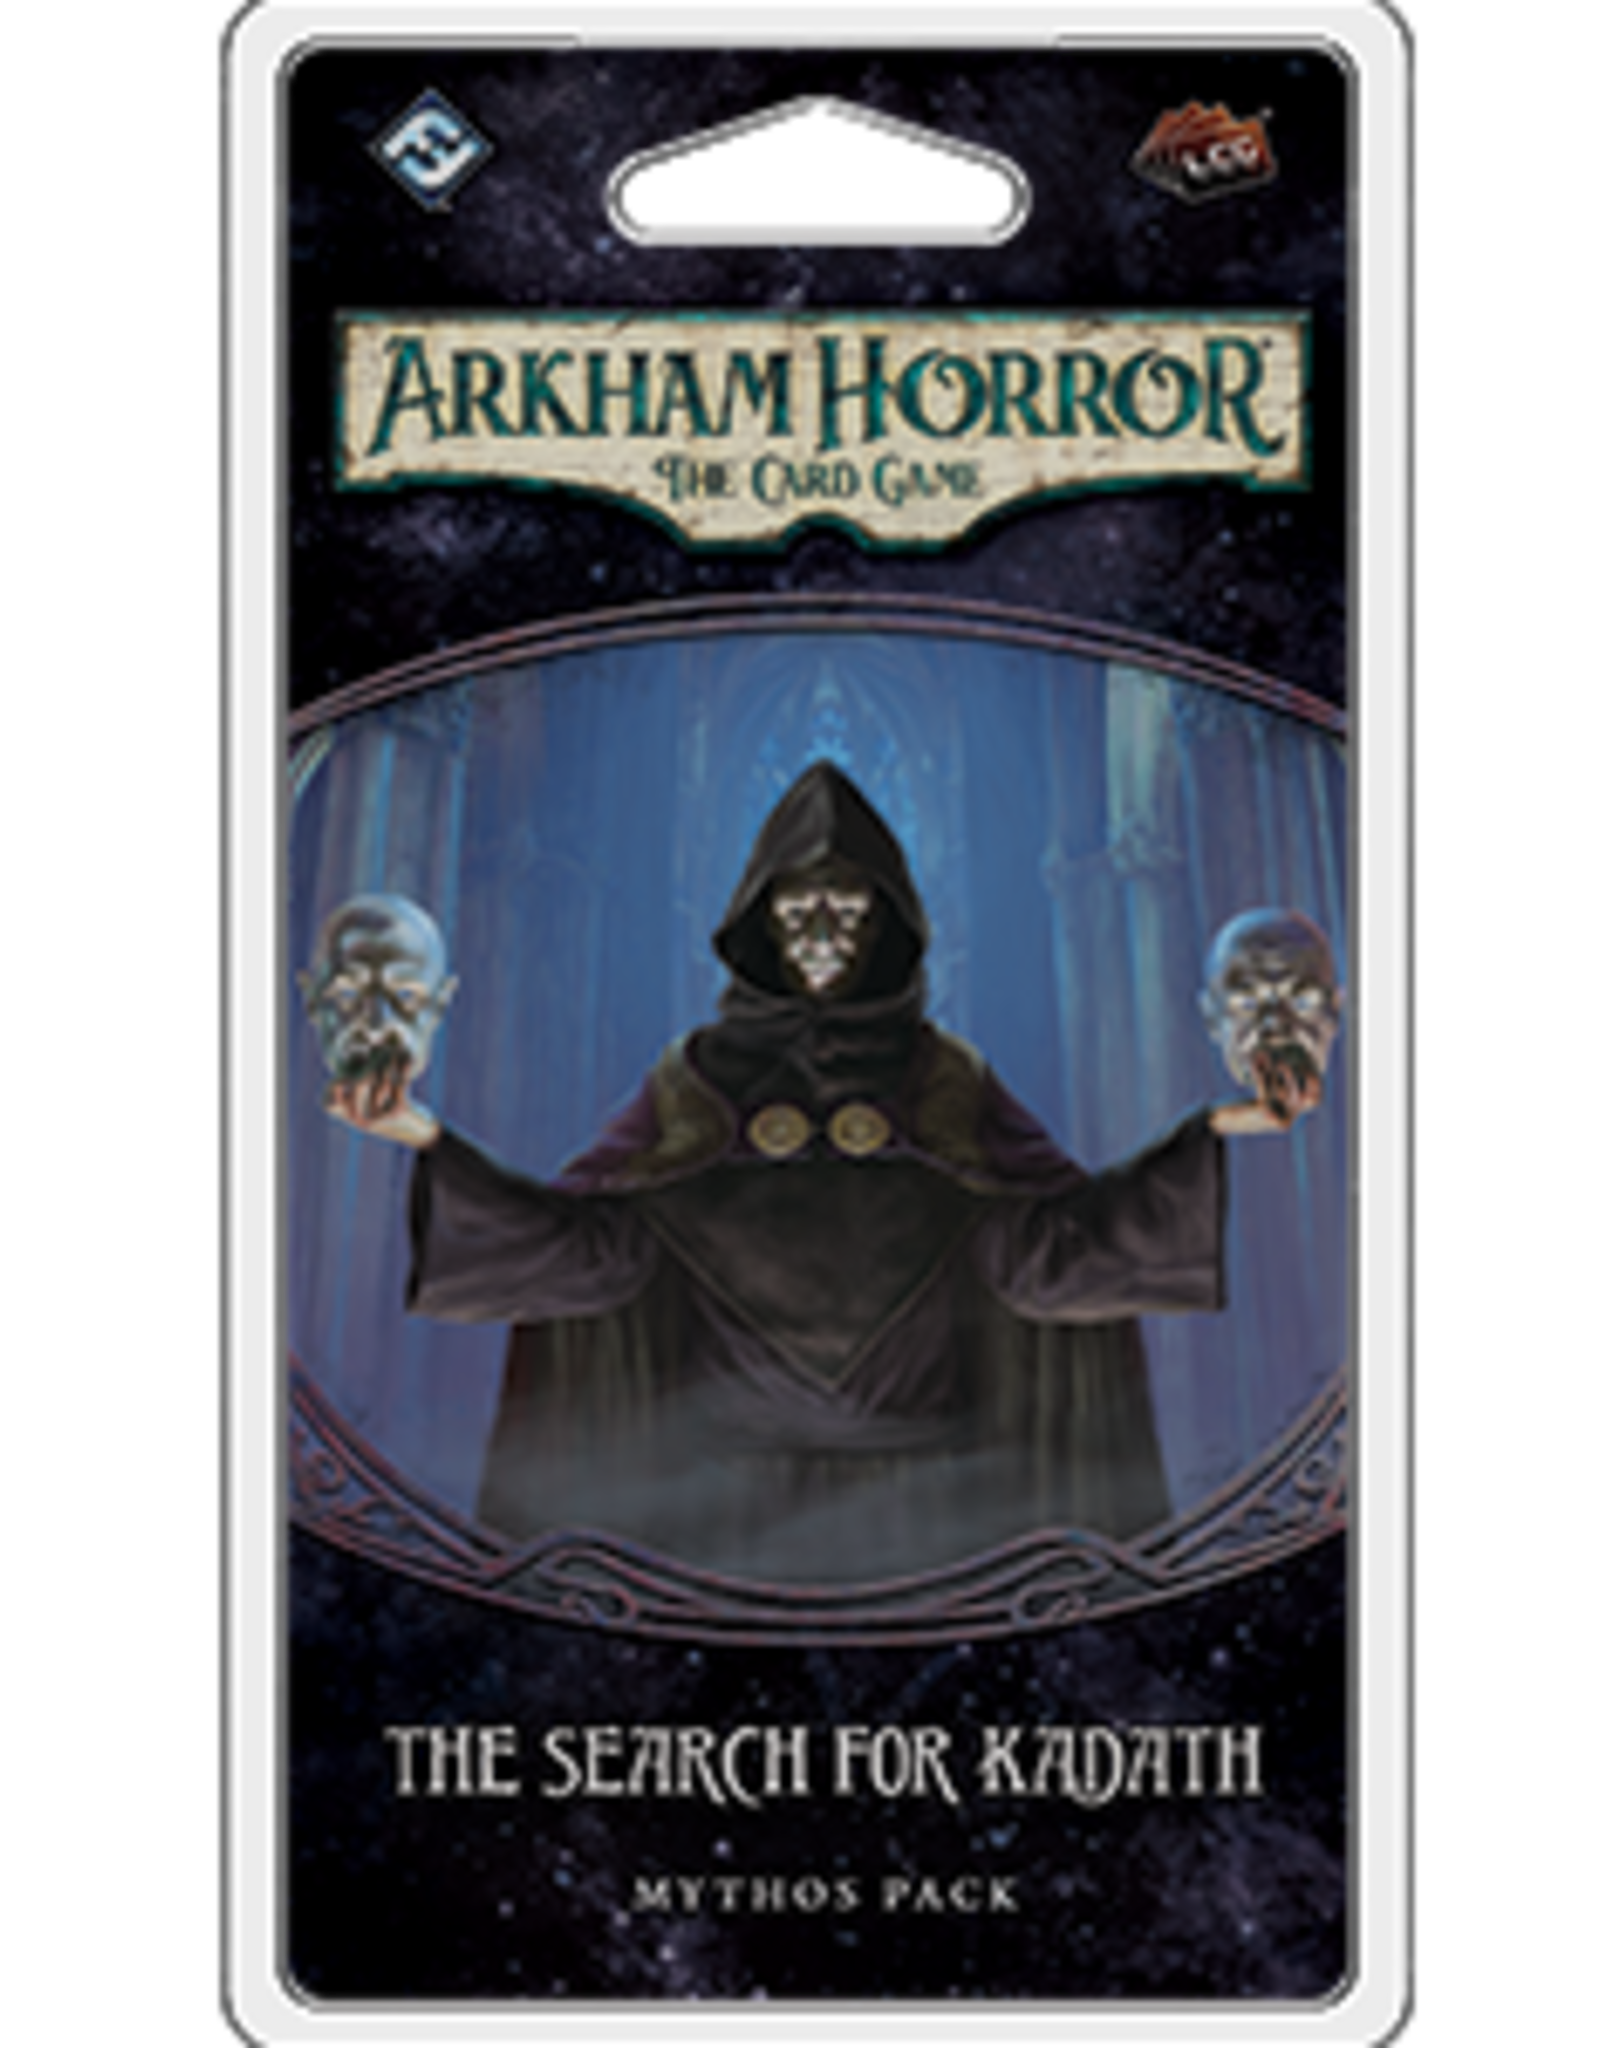 Fantasy Flight Arkham Horror LCG The Search for Kadath Mythos Pack